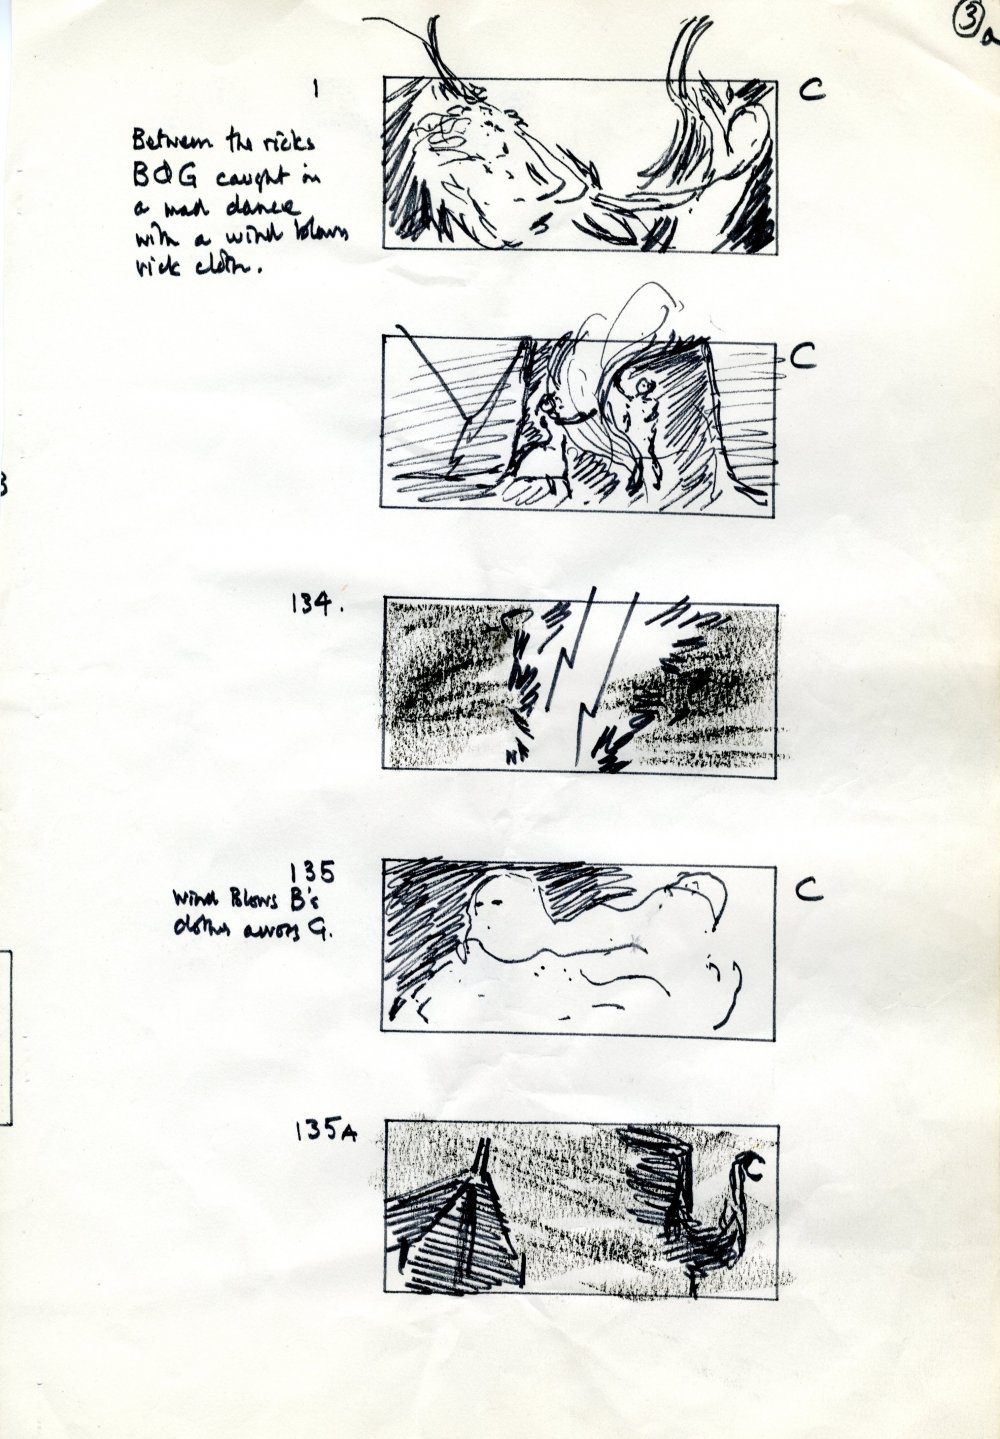 A page of director John Schlesinger's storyboarding for the sequence where Gabriel Oak and Bathsheba battle with the storm to cover the hay ricks with cloths